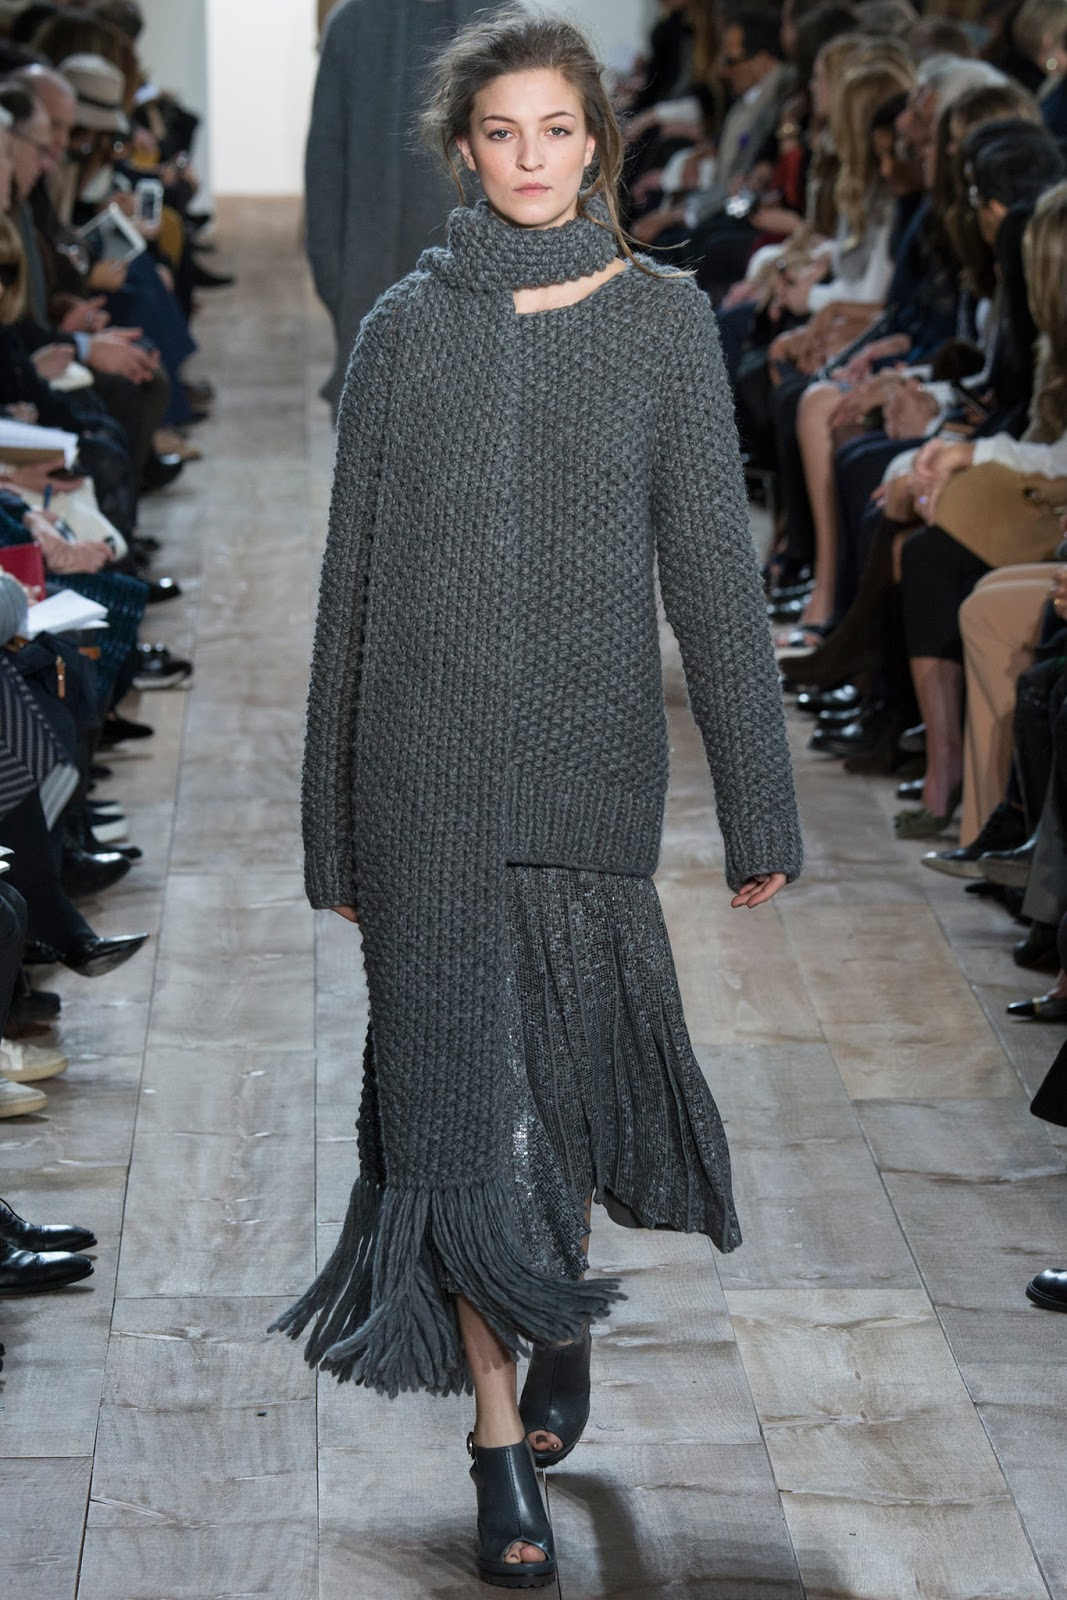 Michael Kors Fall/Winter 2014